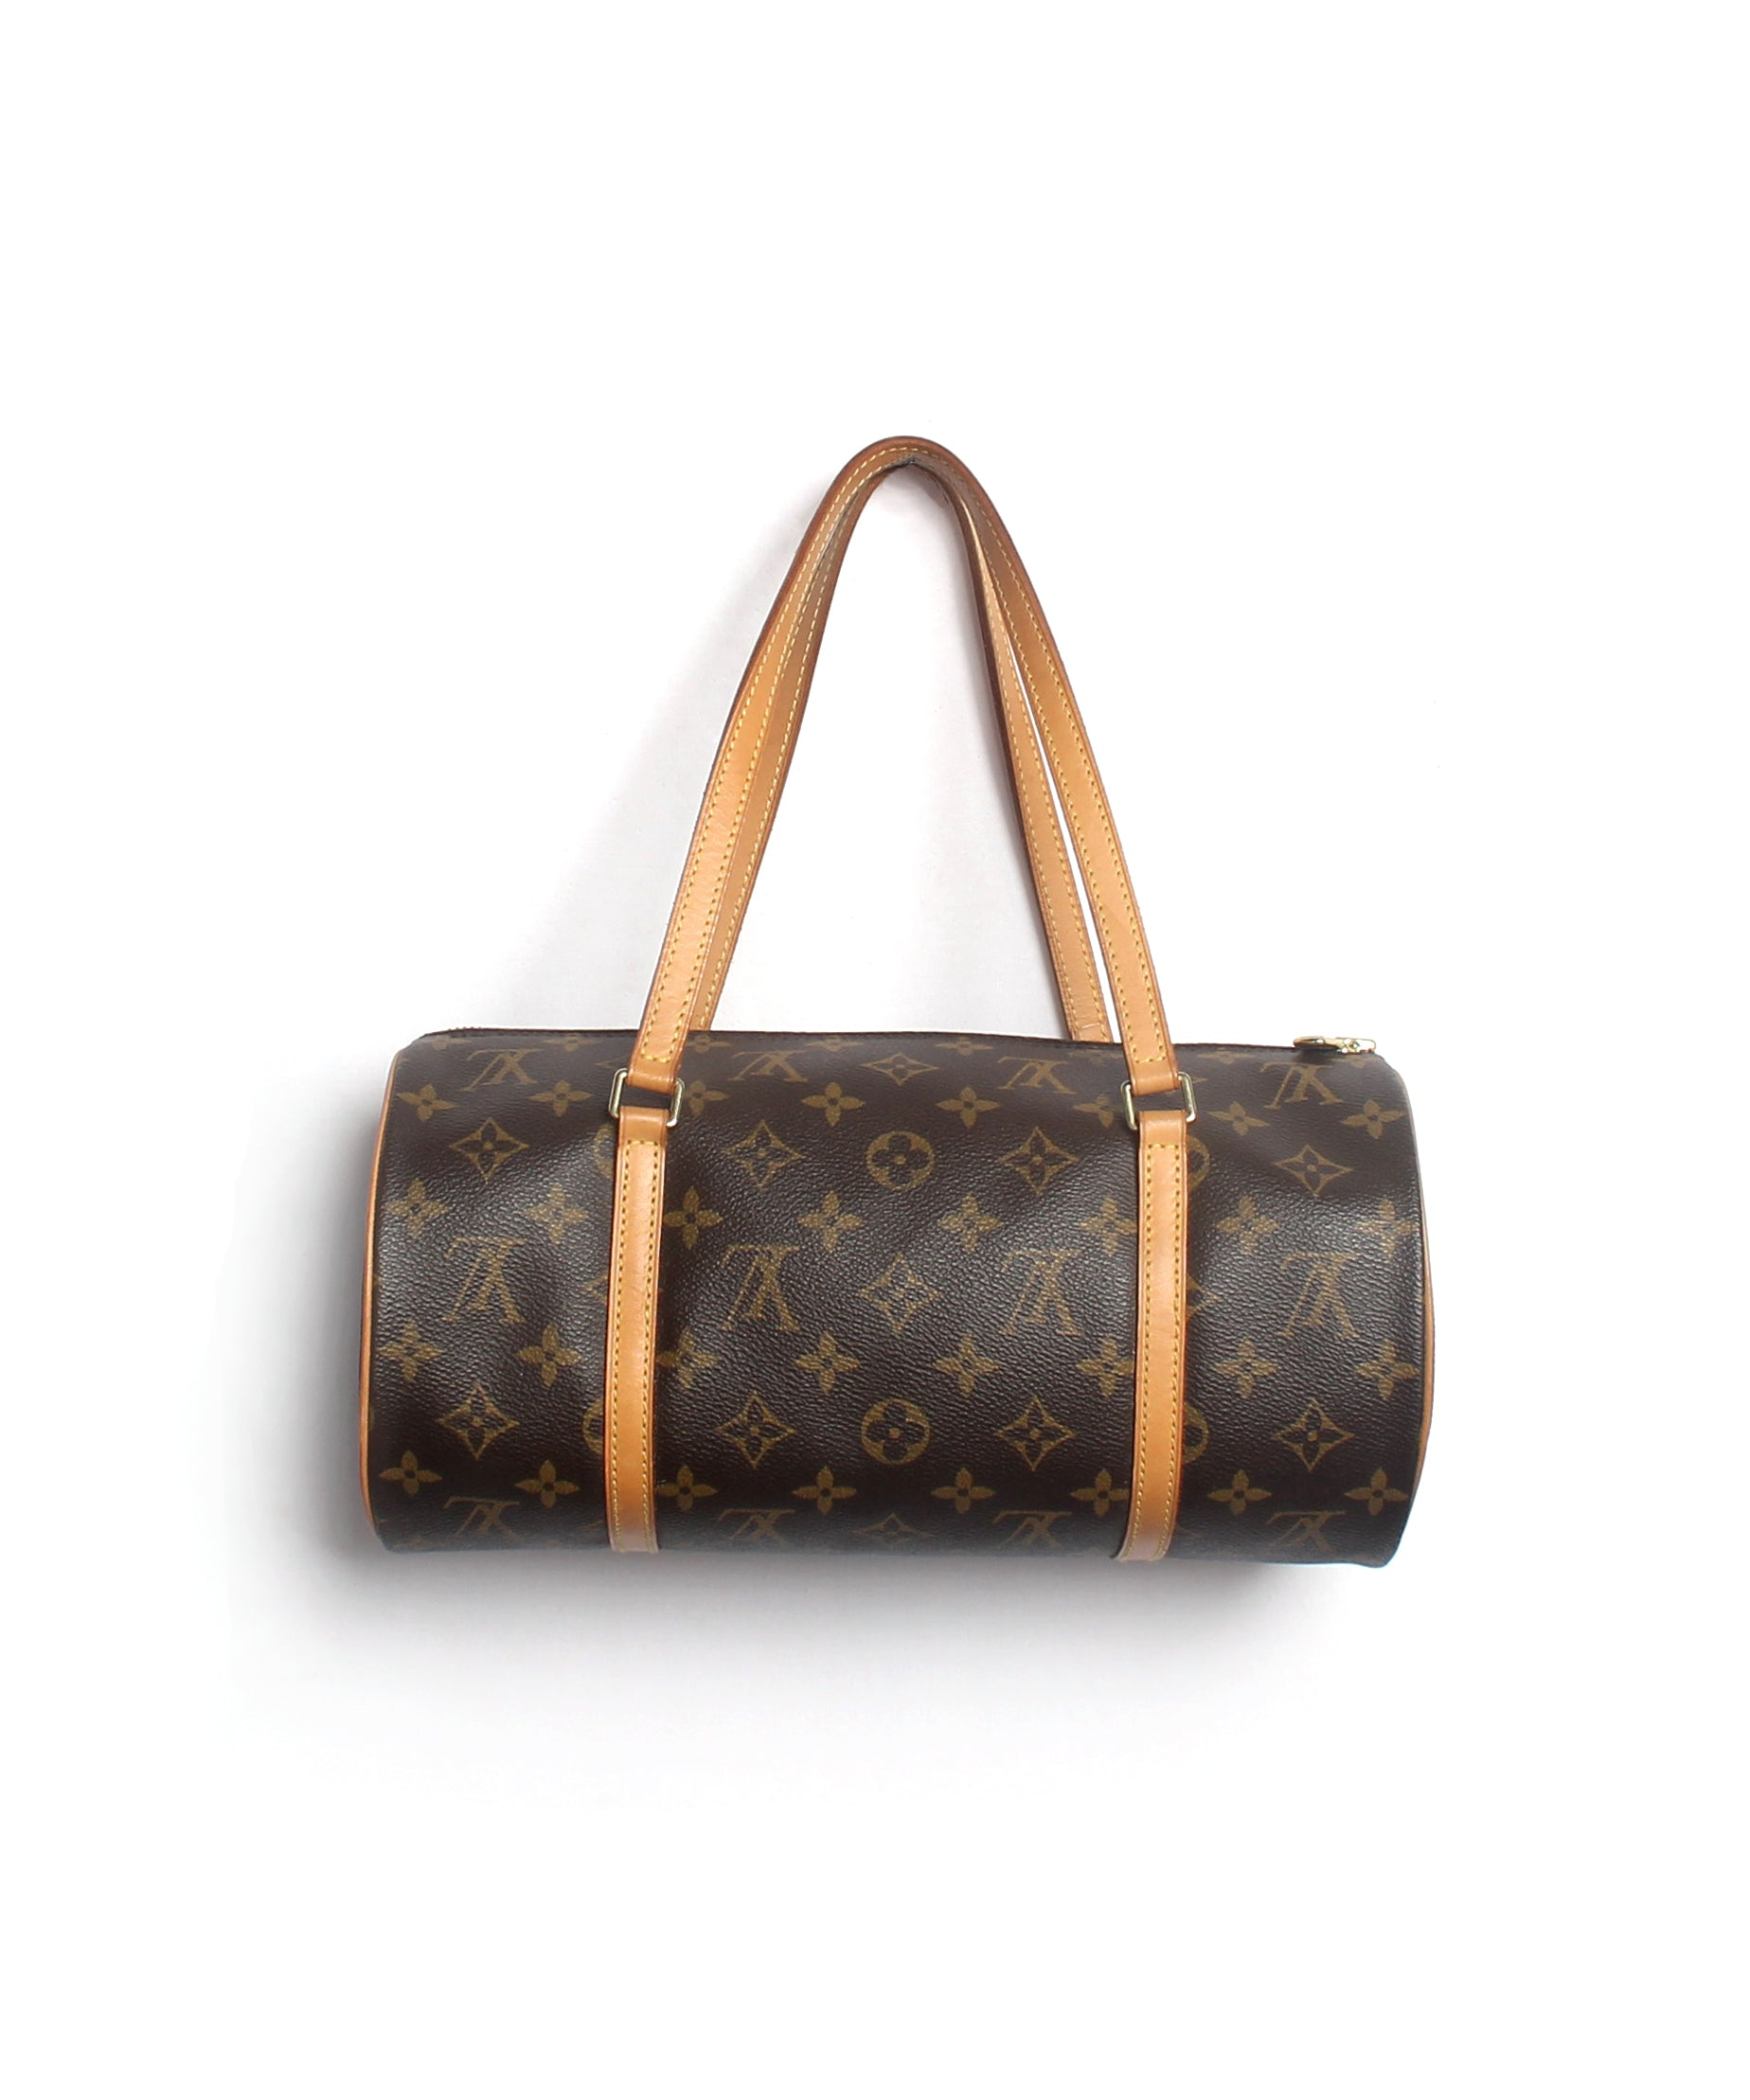 Louis Vuitton Papillon 30 Monogram Bag - C.Madeleine's